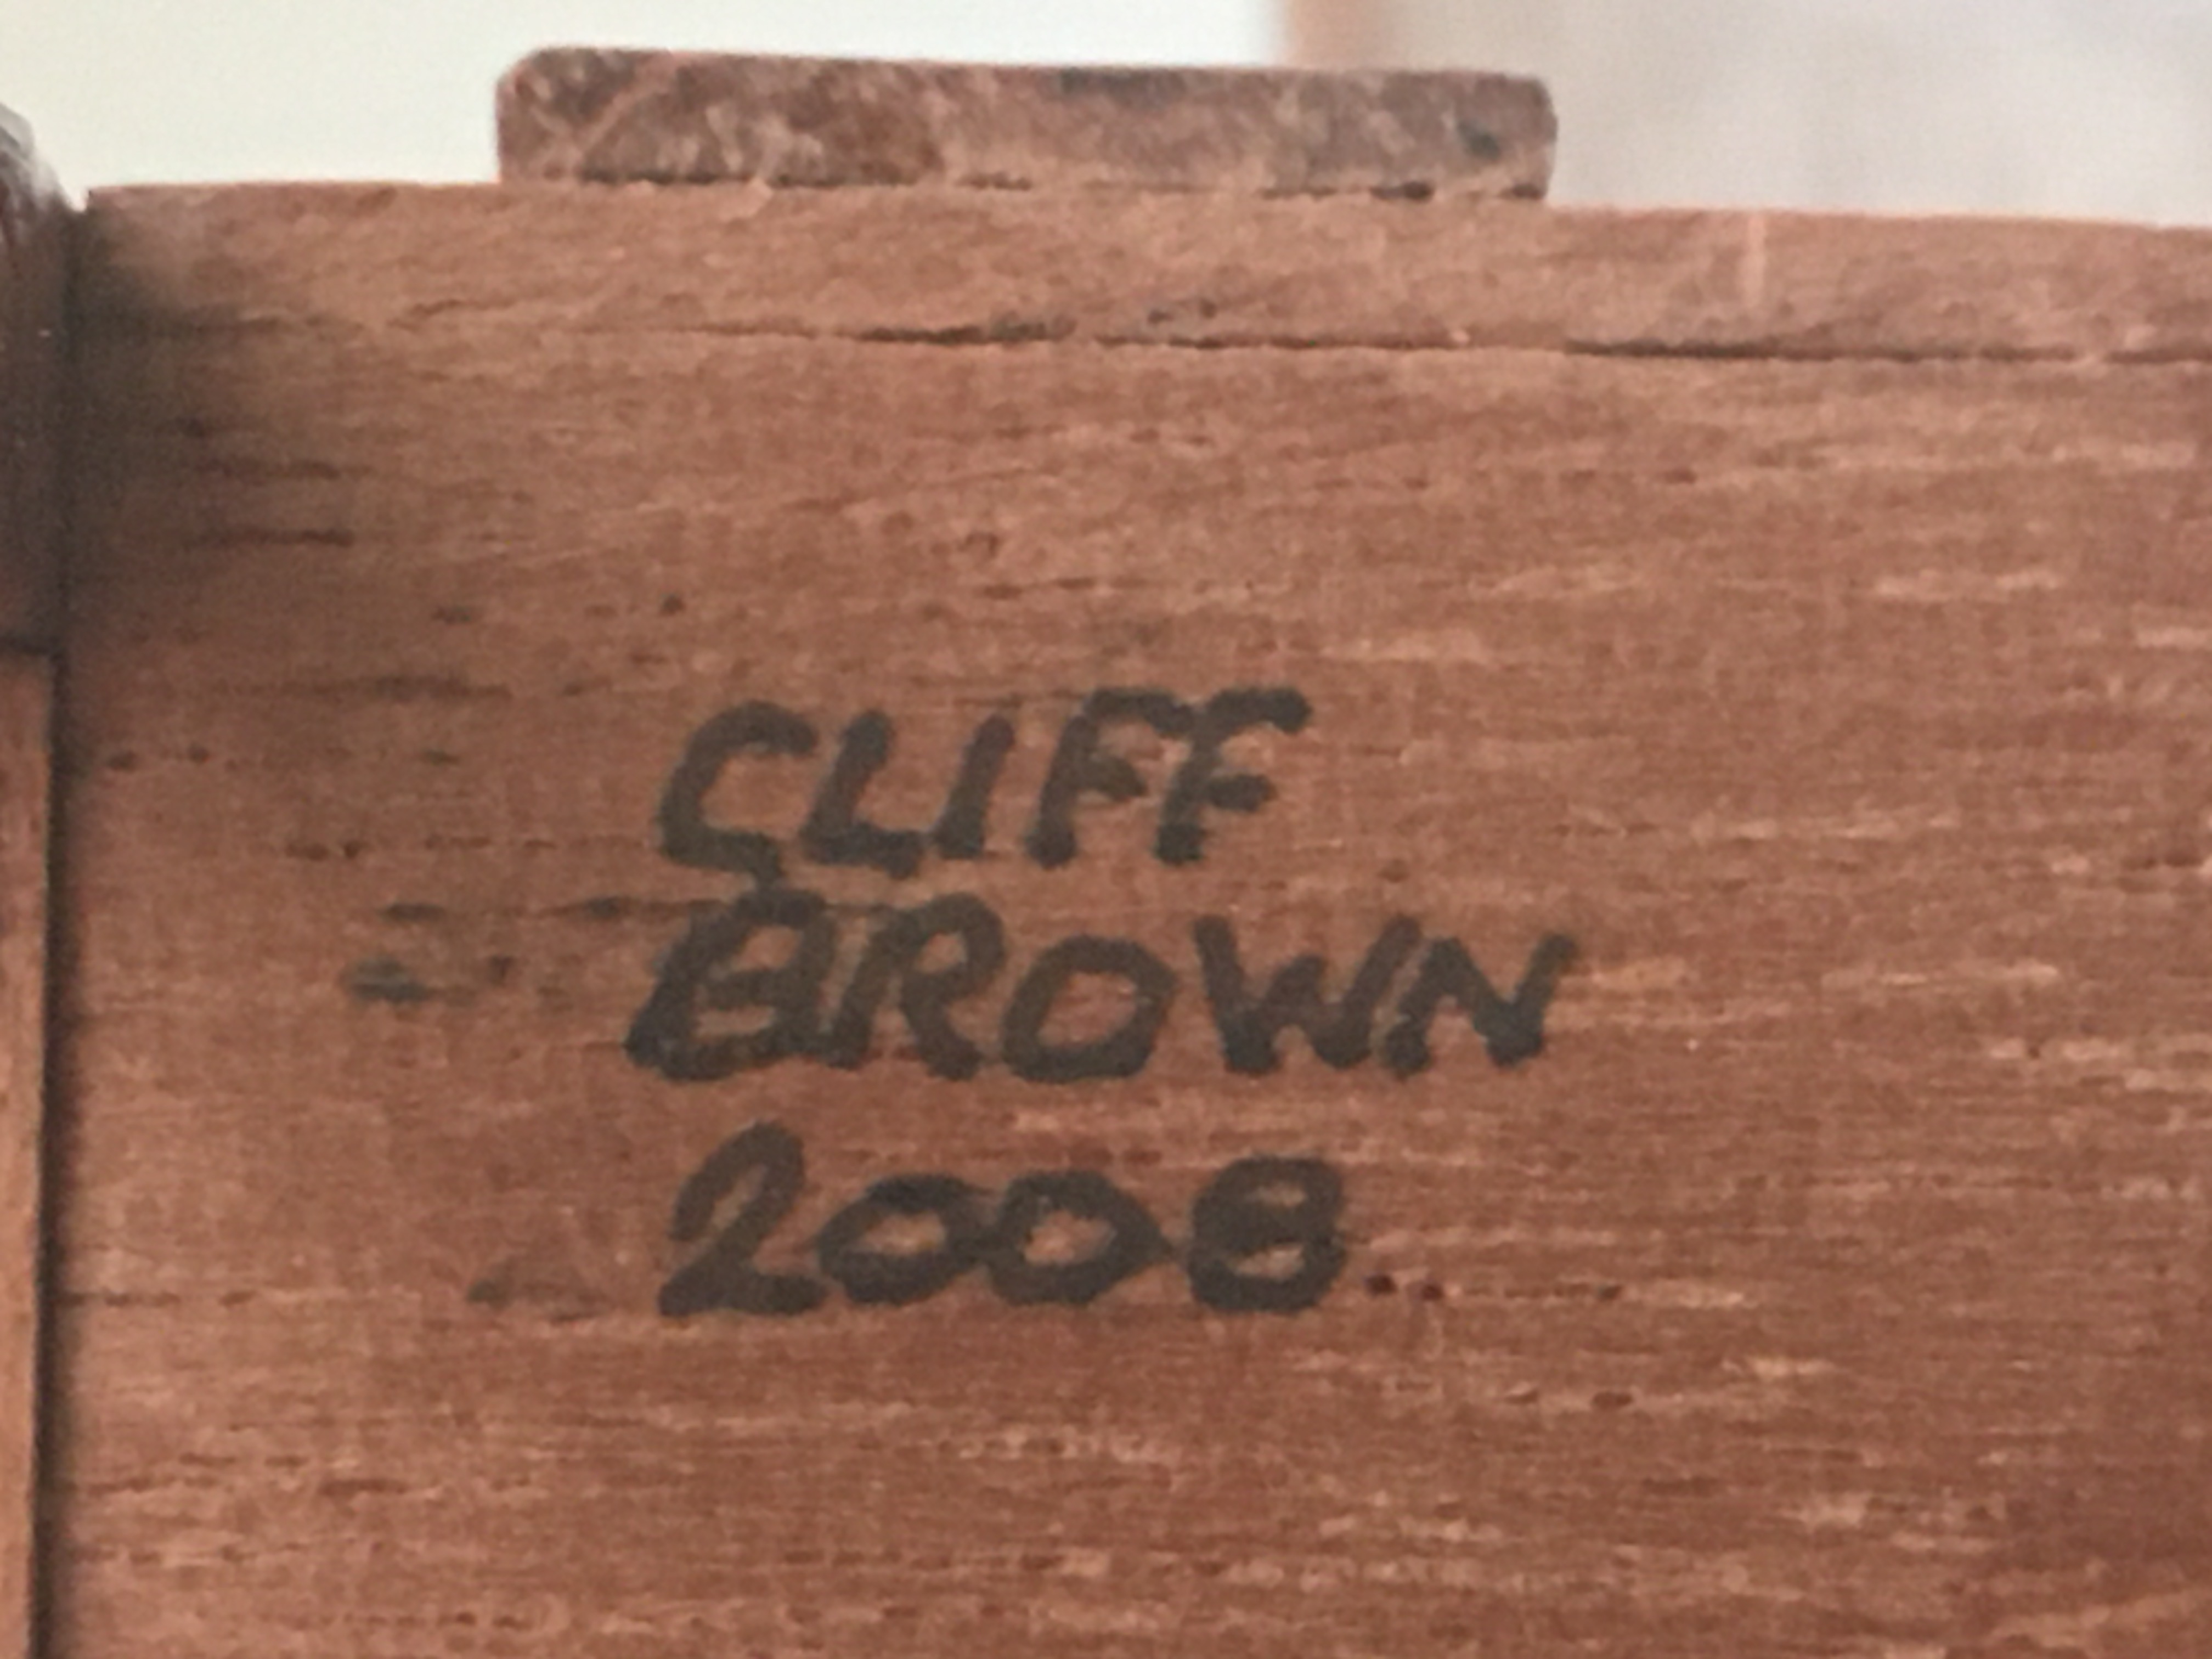 A piece of furniture signed and dated 'Cliff Brown 2008' on the base in black ink and in capitals.